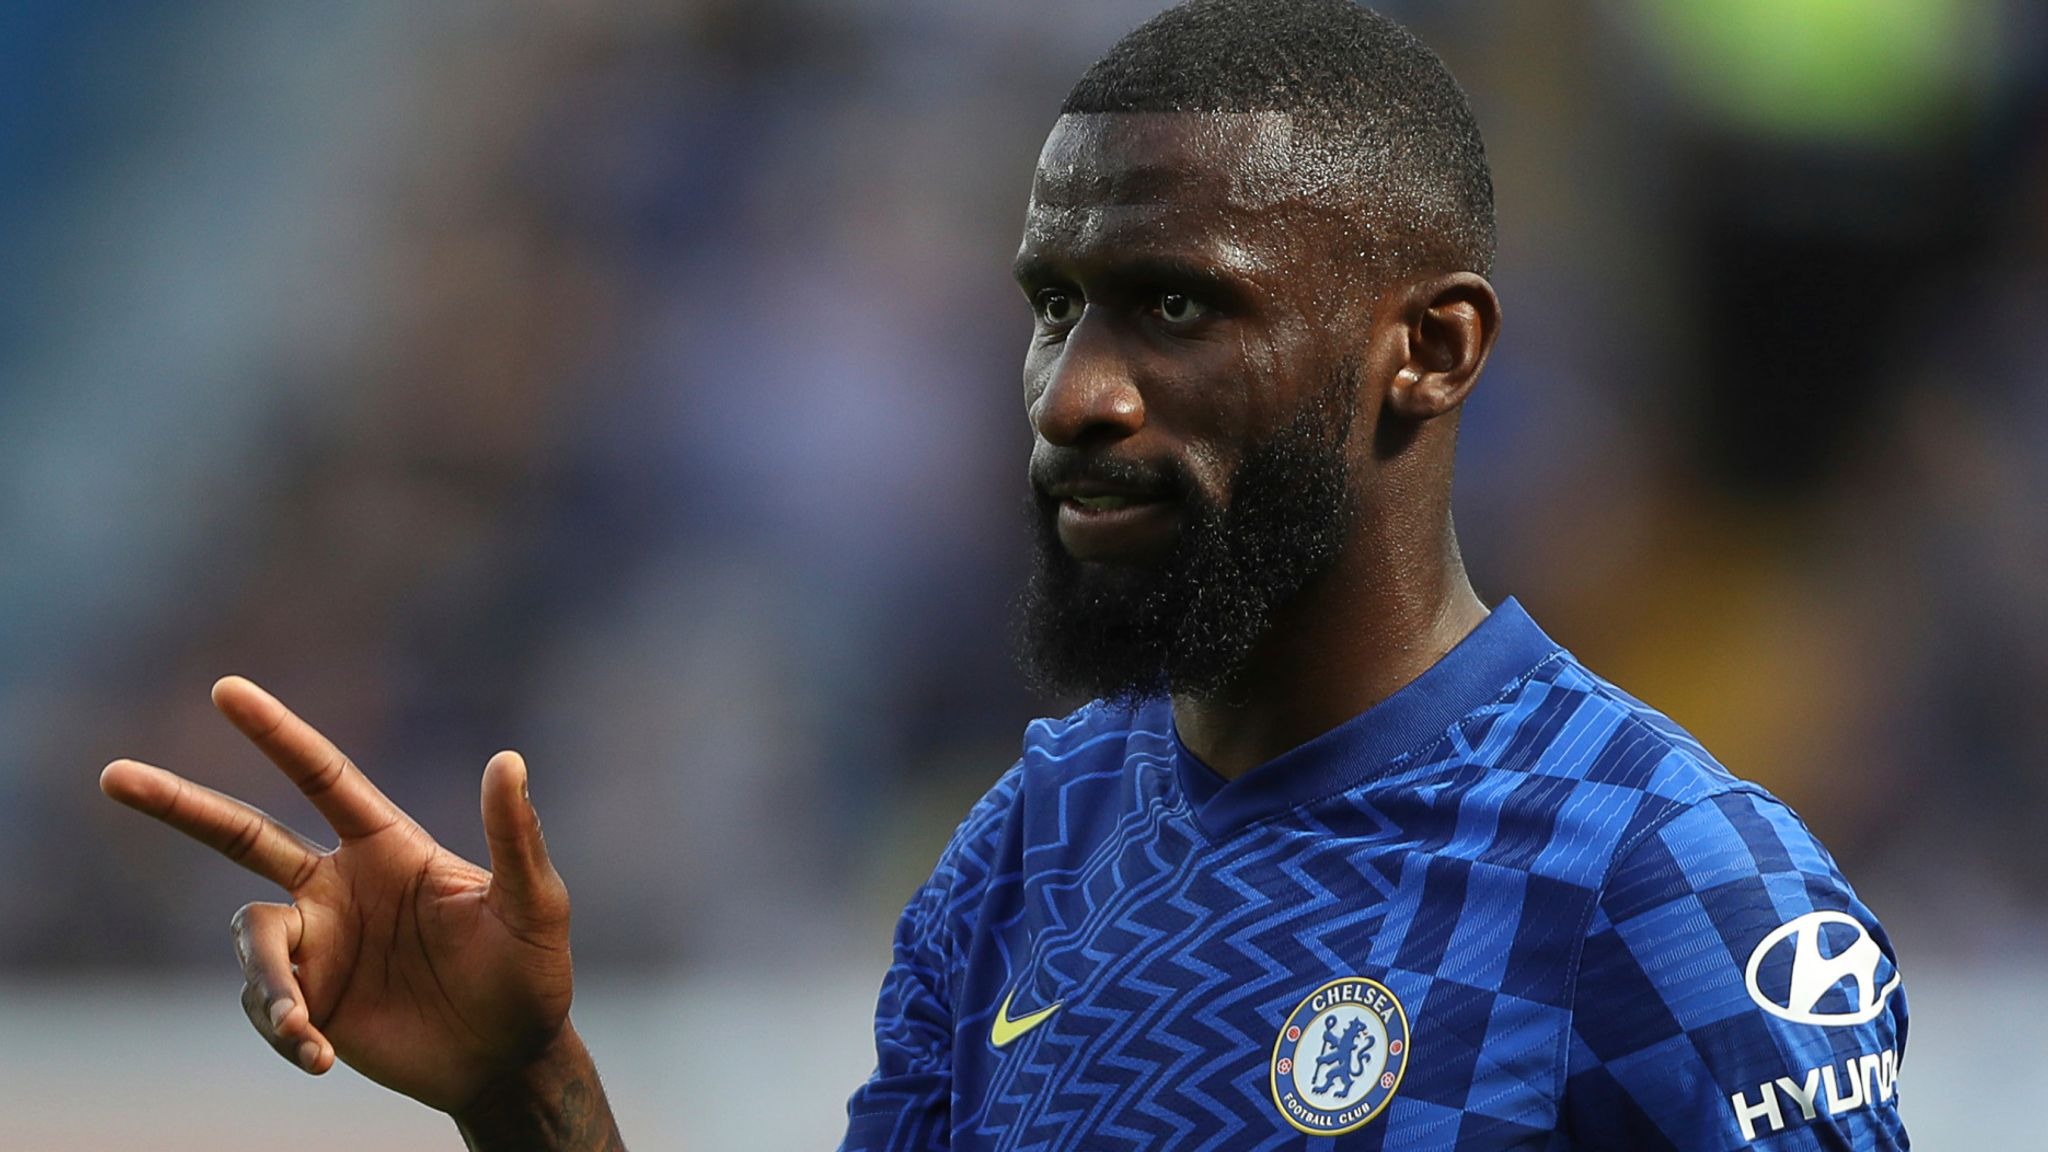 Bayern Munich open talks to sign Rudiger from Chelsea